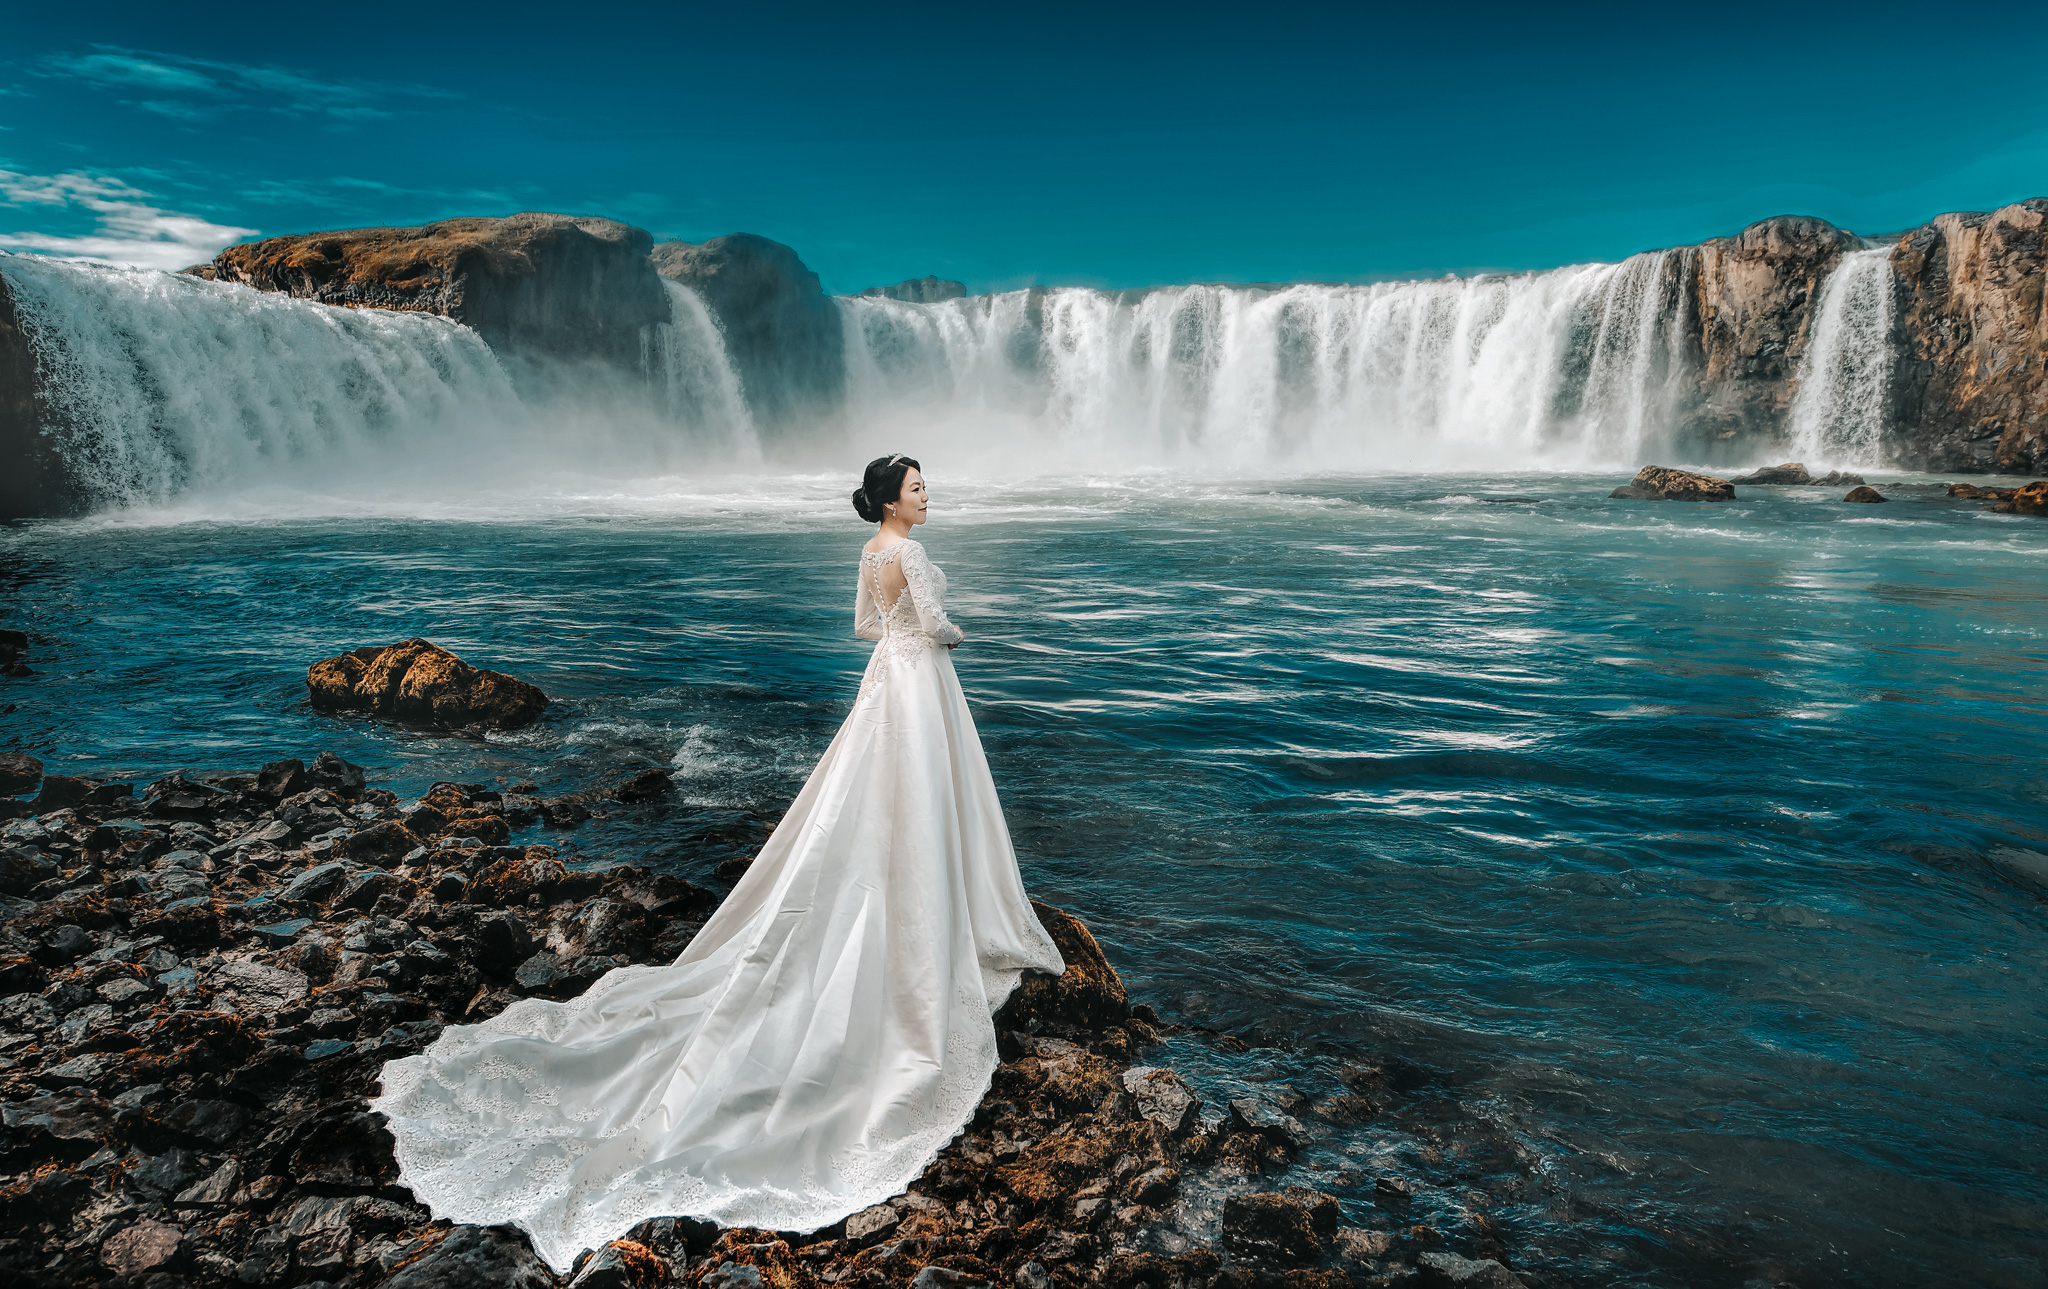 Bride in cathedral gown against waterfall - photo by Edwin Tan Photography